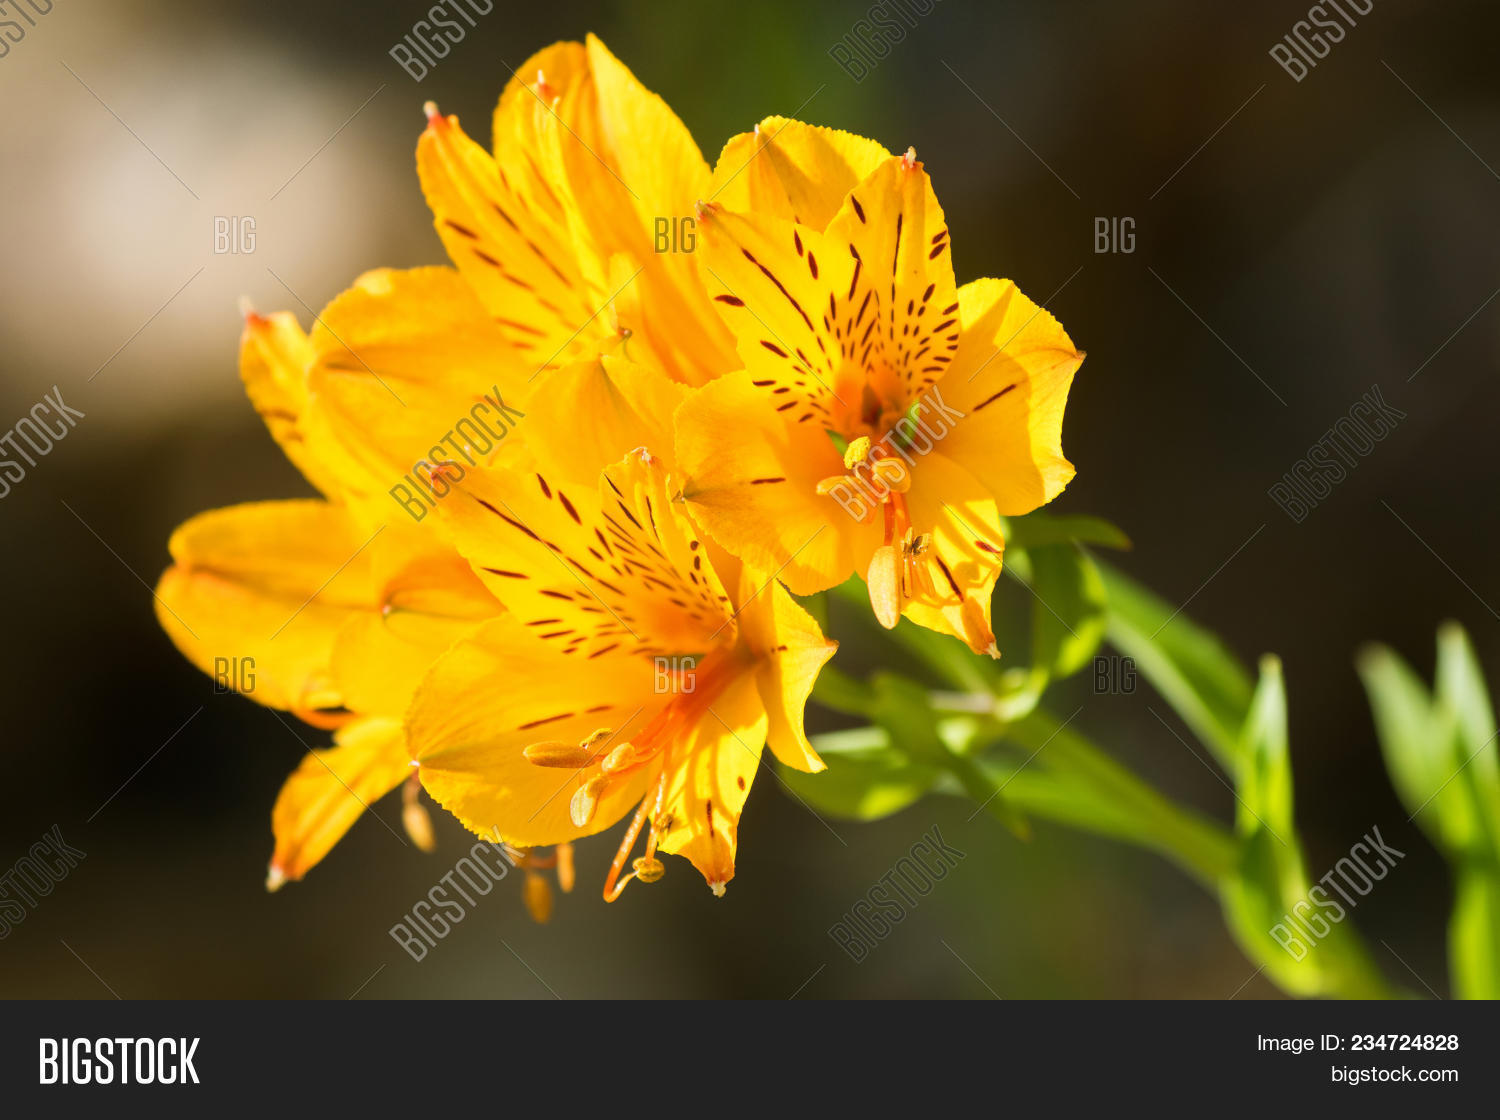 Alstroemeria Flowers In Yellow Color Also Called Peruvian Lily